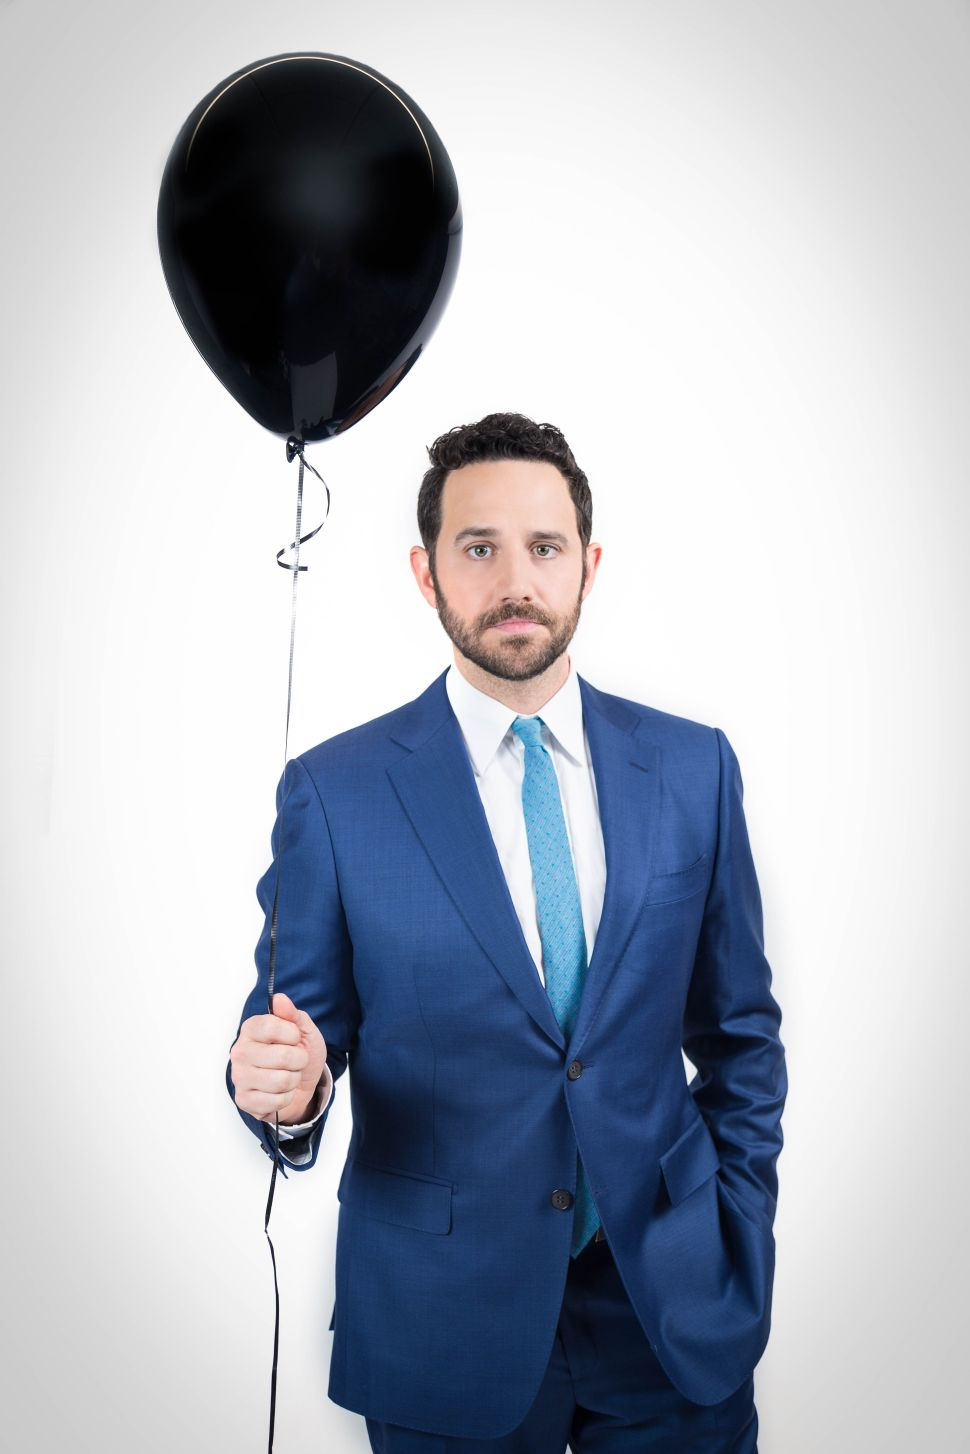 Santino Fontana photographed on February 15, 2017. Photo Credit: Kaitlyn Flannagan for Observer; Grooming by Muriel Vancauwen for Exclusive Artists using Bioderma and Caviar Style